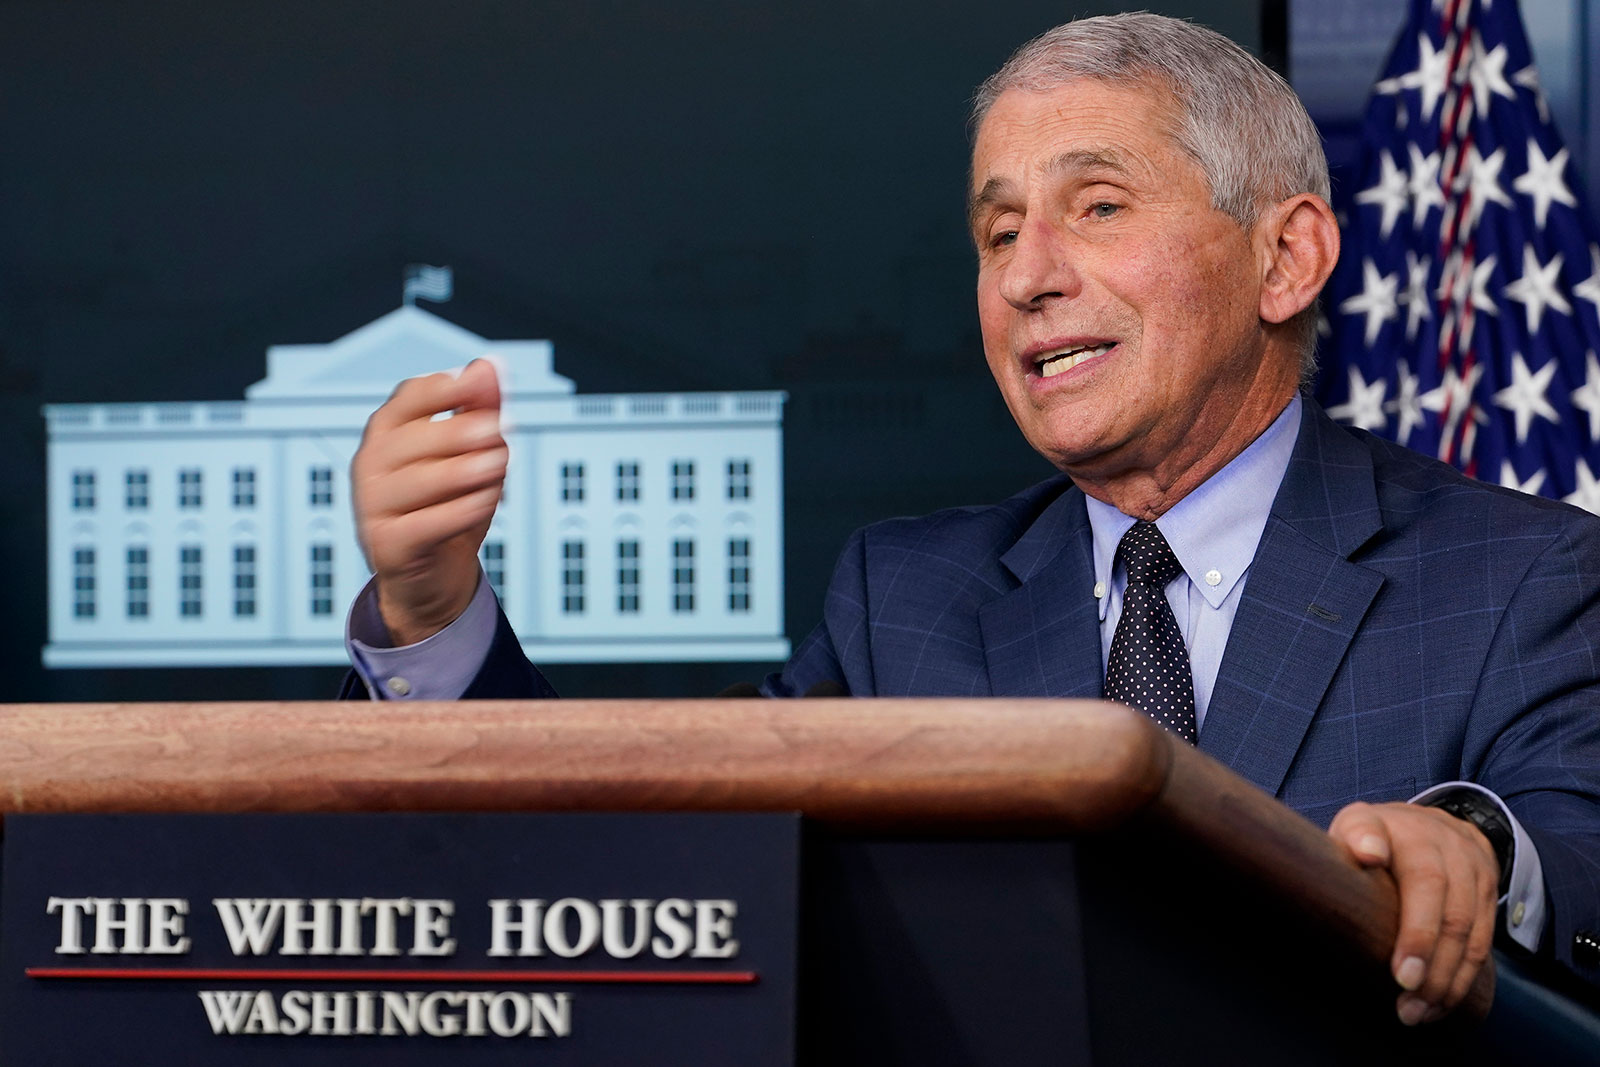 Dr. Anthony Fauci speaks during a news conference at the White House on November 19.